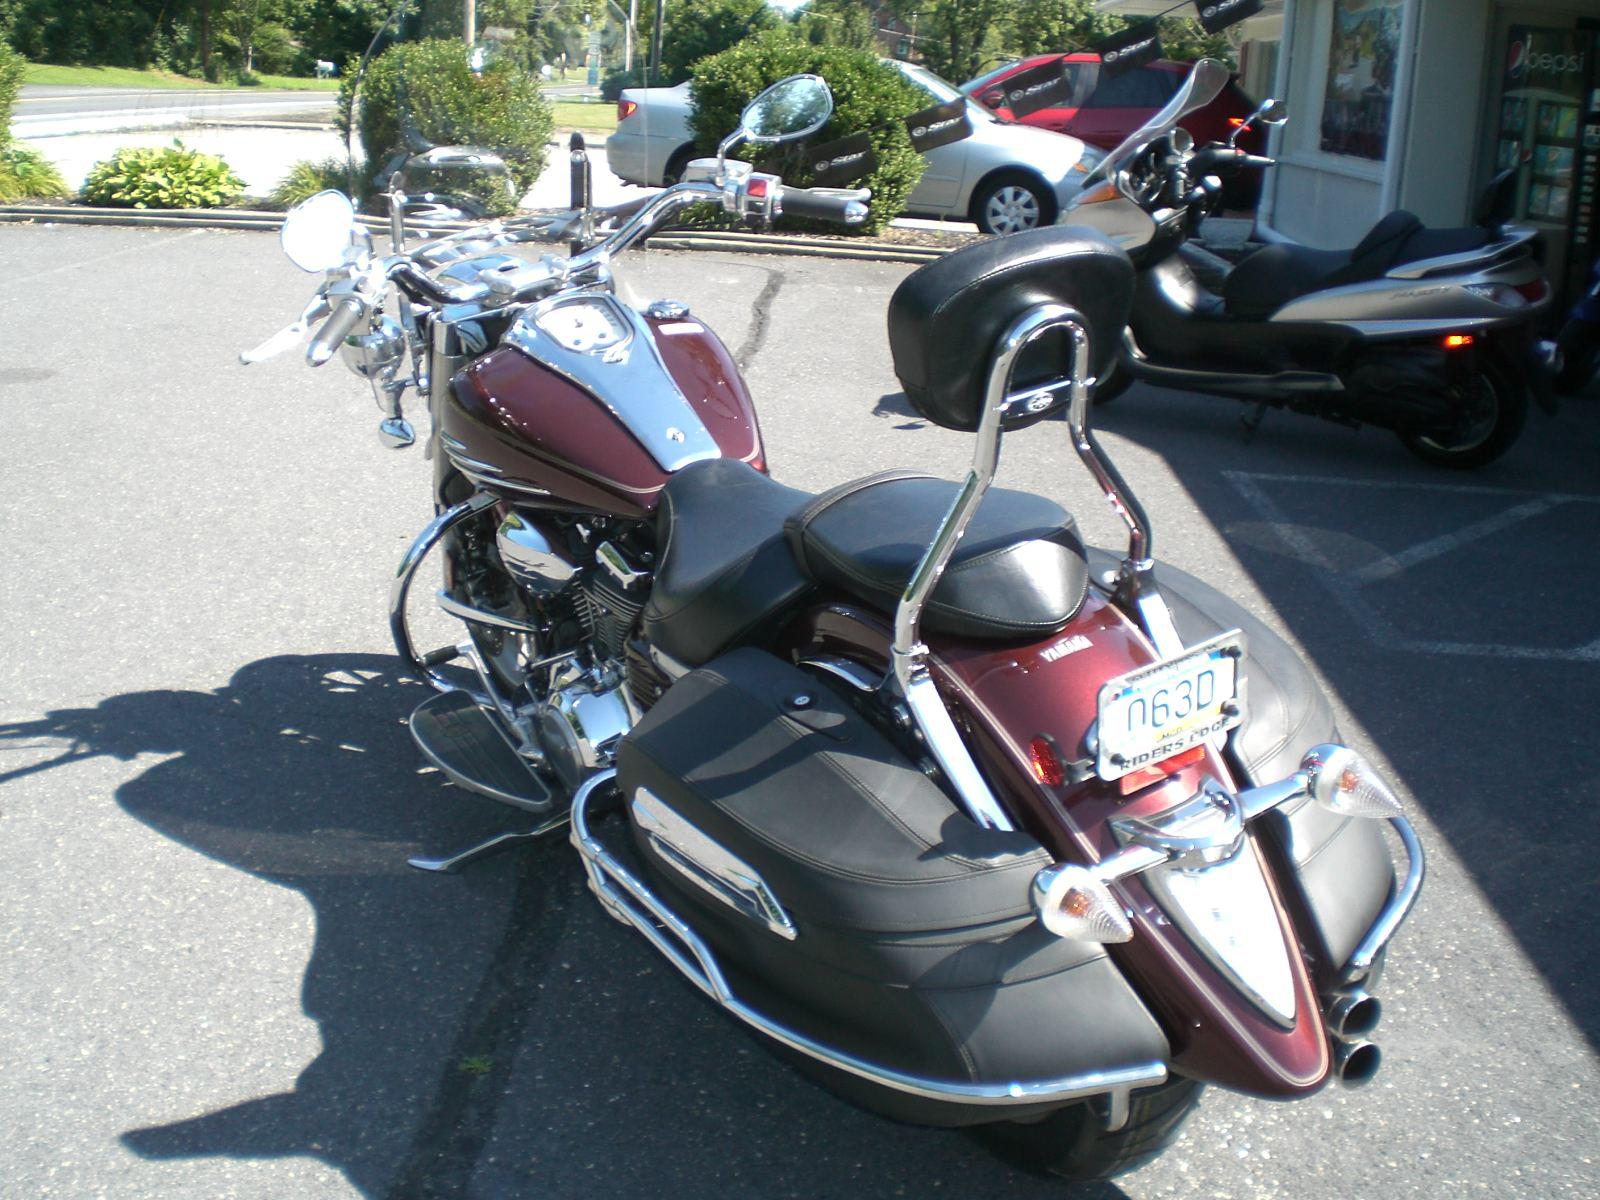 2006 Yamaha Stratoliner For Sale In Gettysburg Pa Riders Edge 2008 Ignition Wiring Cimg56861